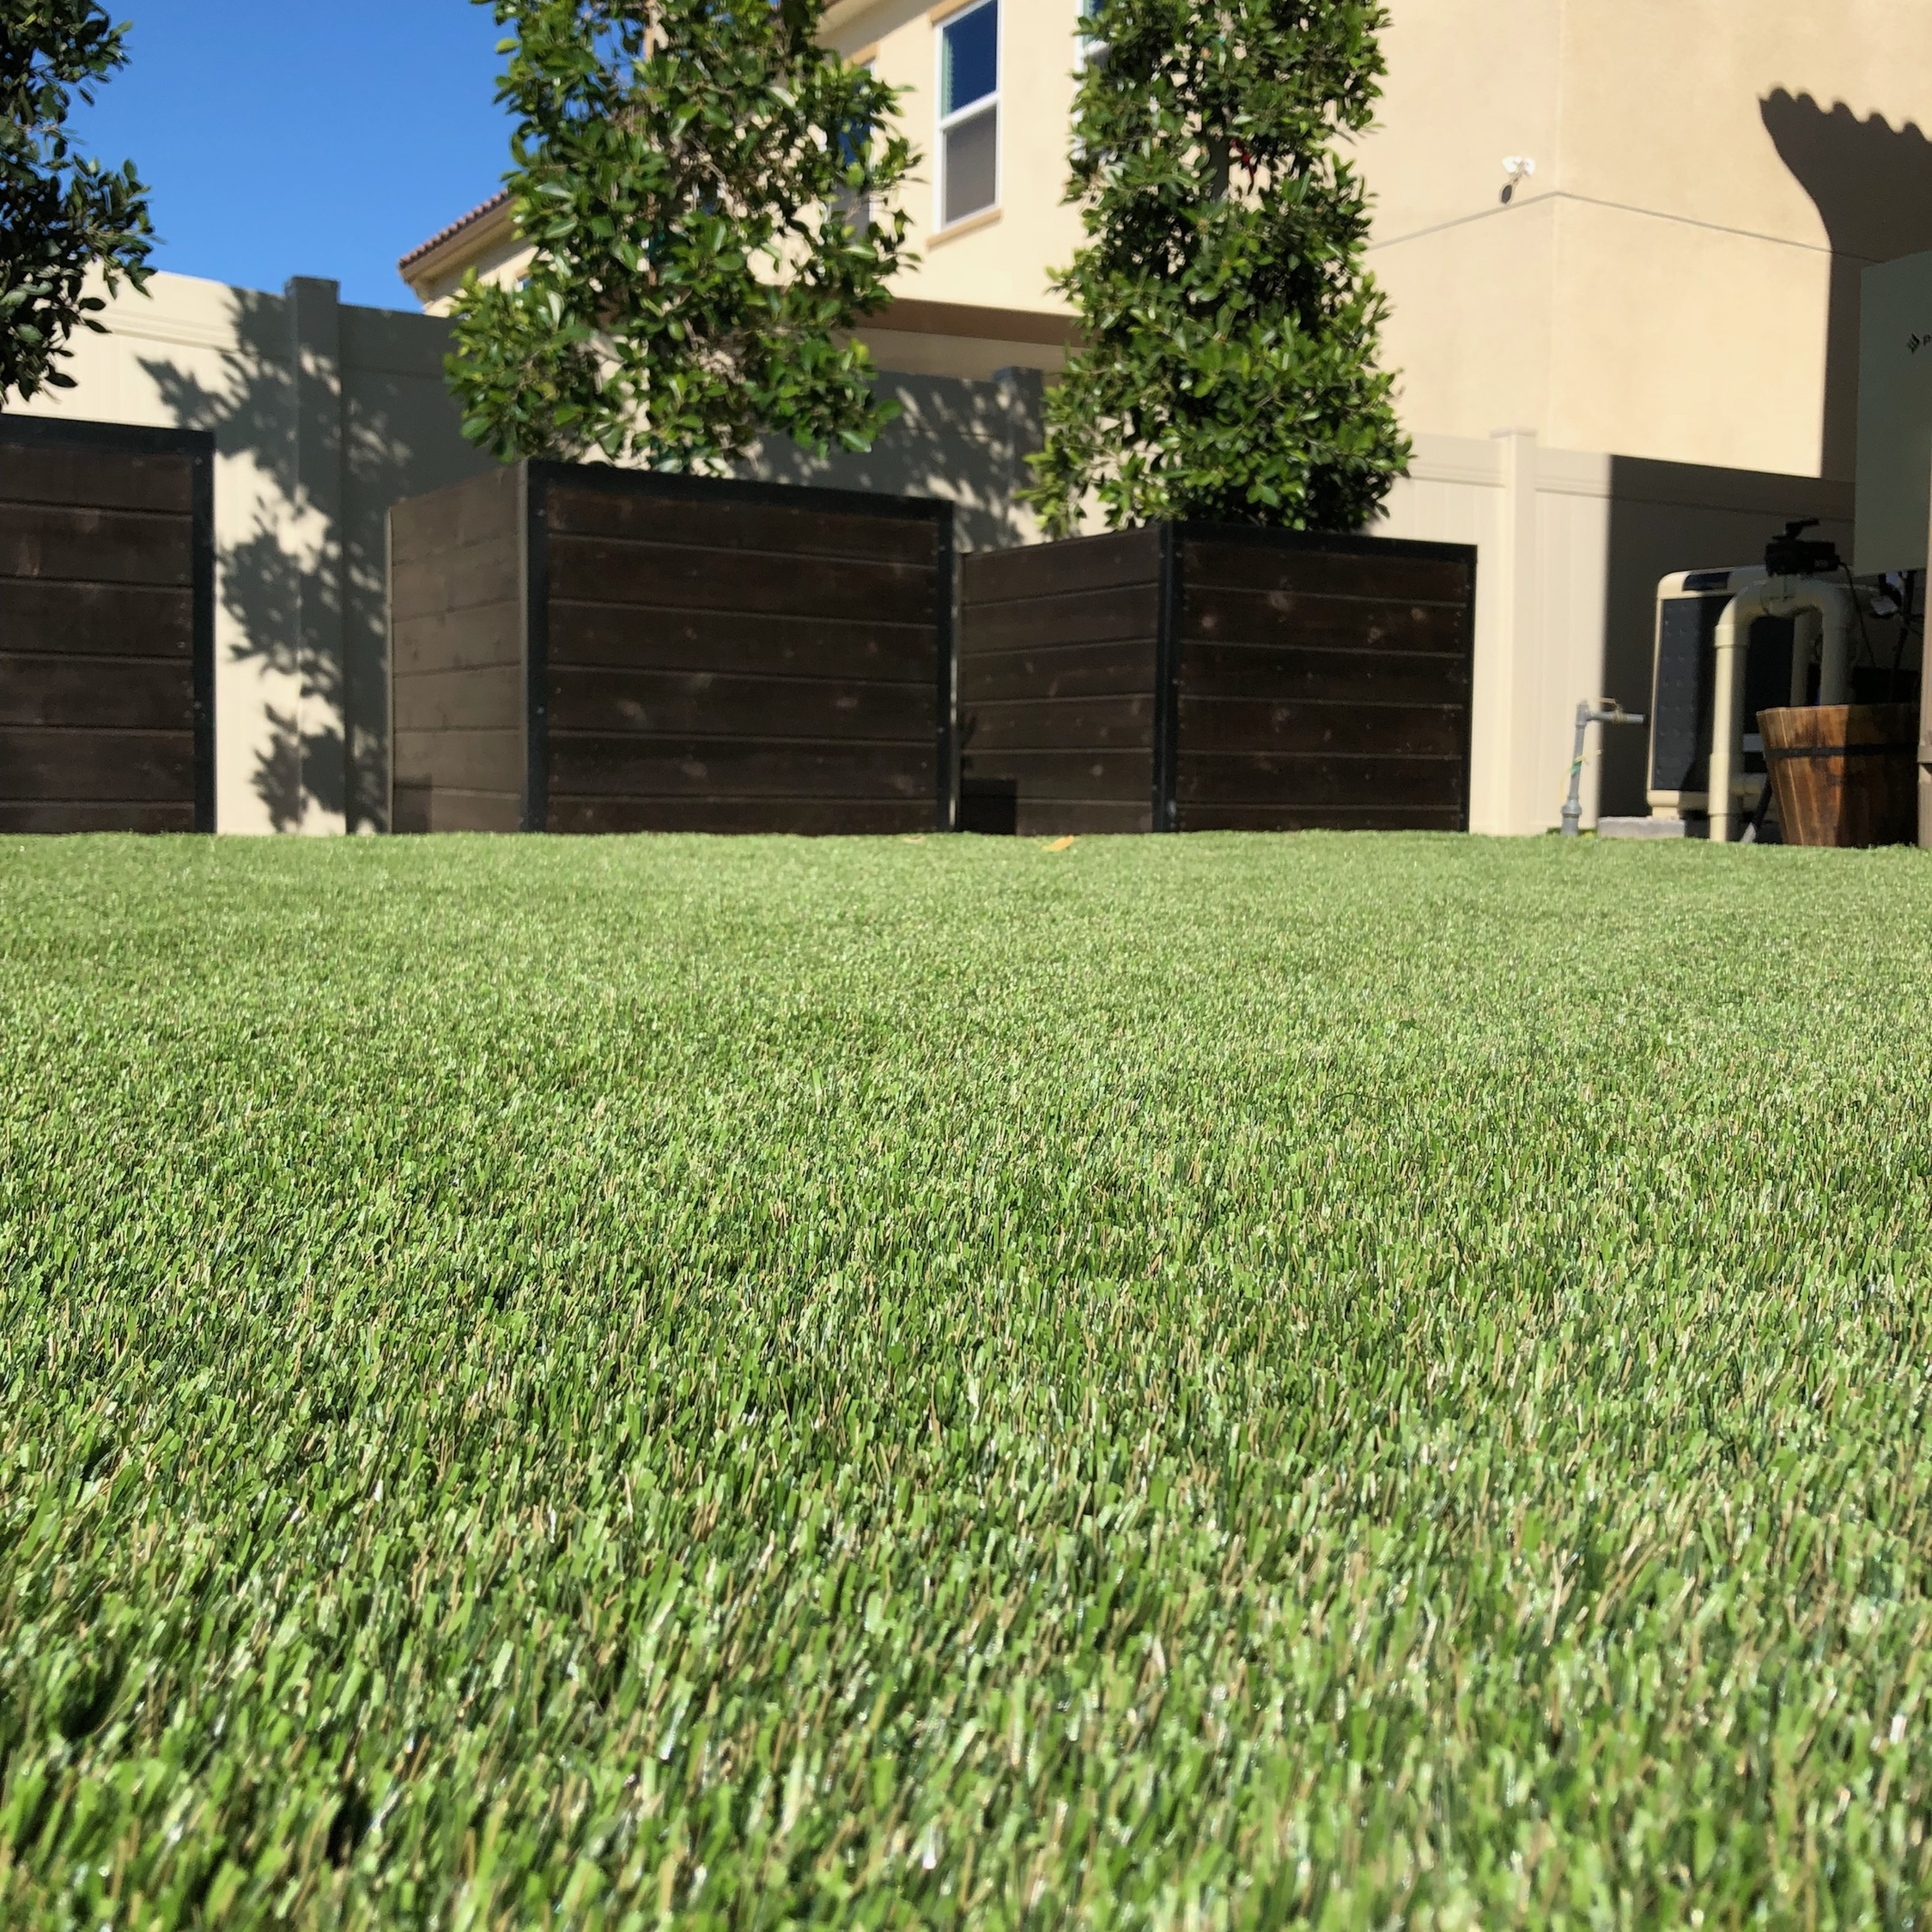 Super Natural 60 real grass,most realistic artificial grass,realistic artificial grass,artificial grass,fake grass,synthetic grass,grass carpet,artificial grass rug,artificial turf,synthetic turf,artificial turf installation,how to install artificial turf,used artificial turf